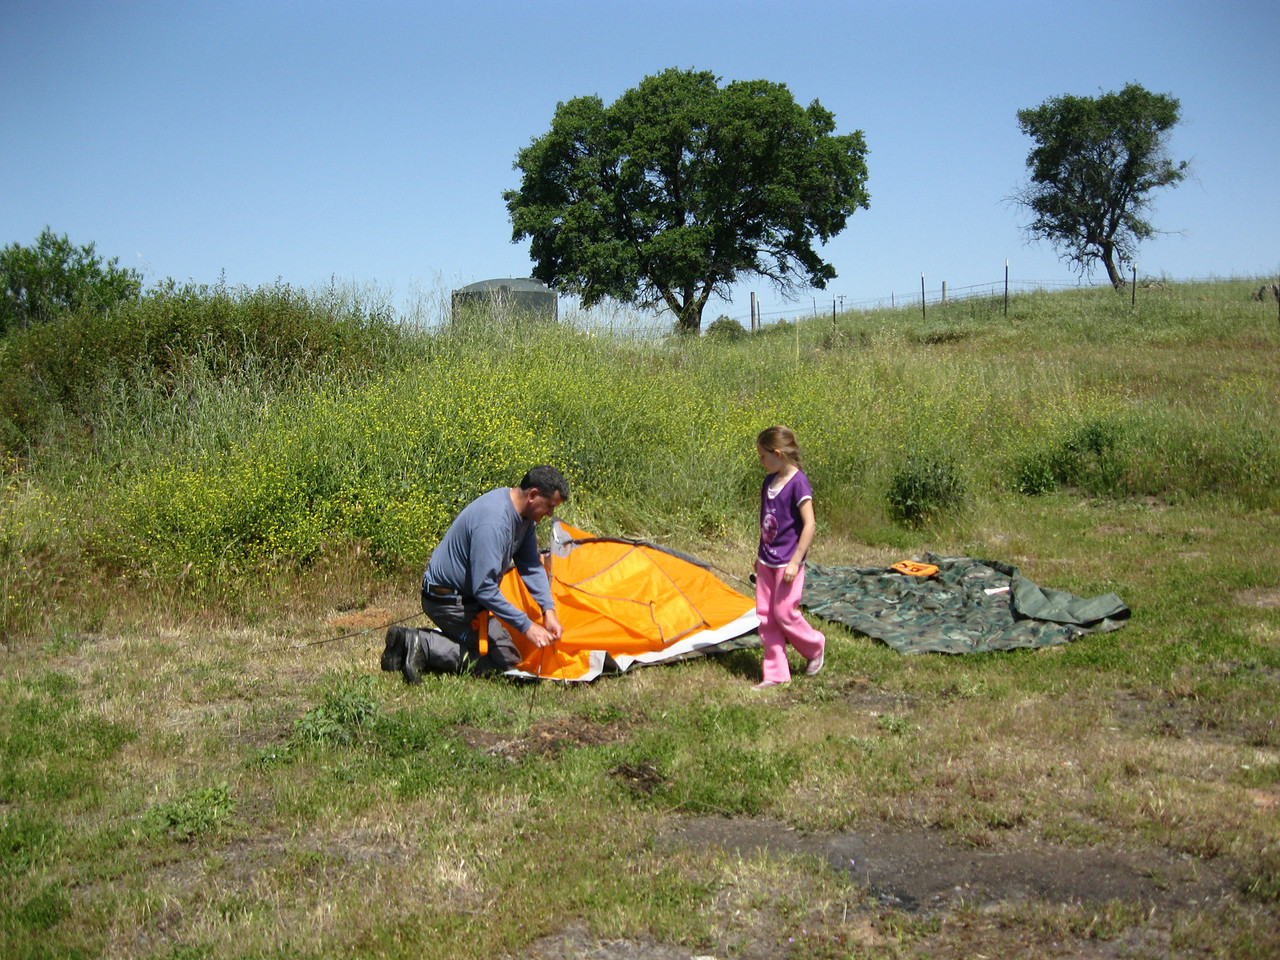 The lovely Stella helps Javier Sanchez set up his tent. Stella speaks perfect Spanish.